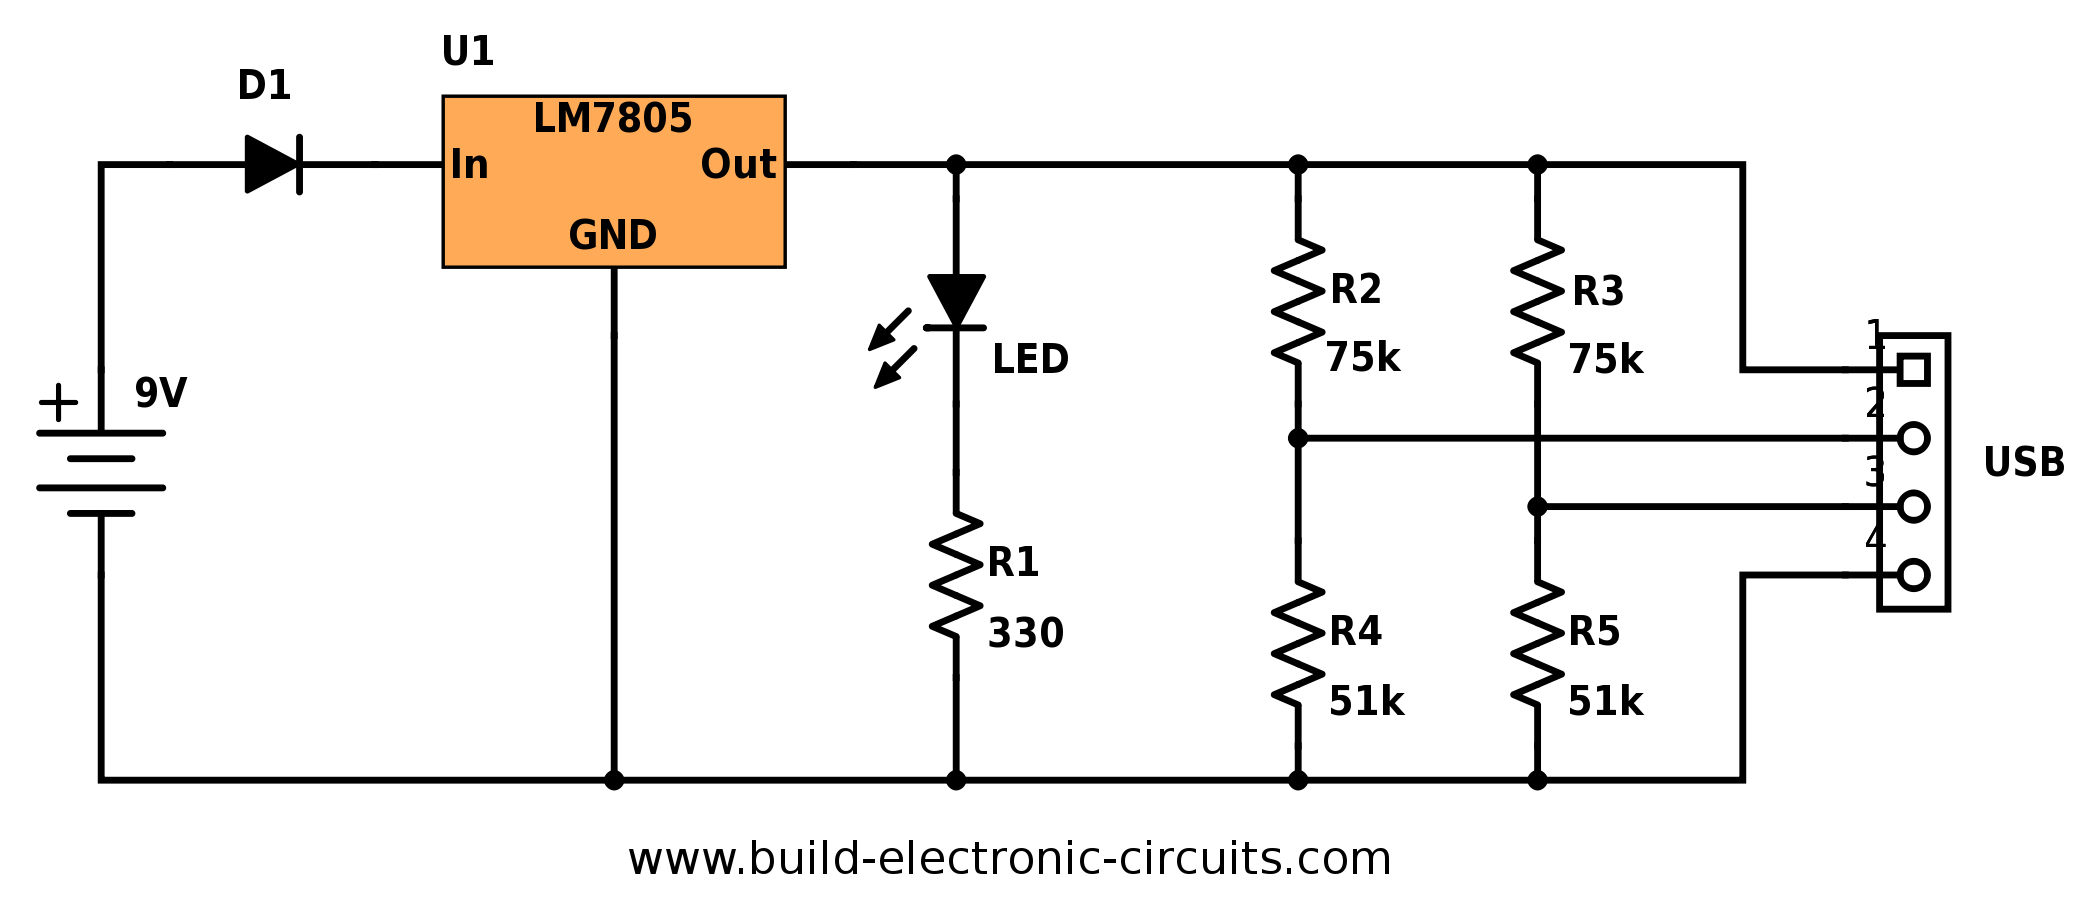 Portable Usb Charger Circuit - Build Electronic Circuits - Usb Battery Charger Wiring Diagram